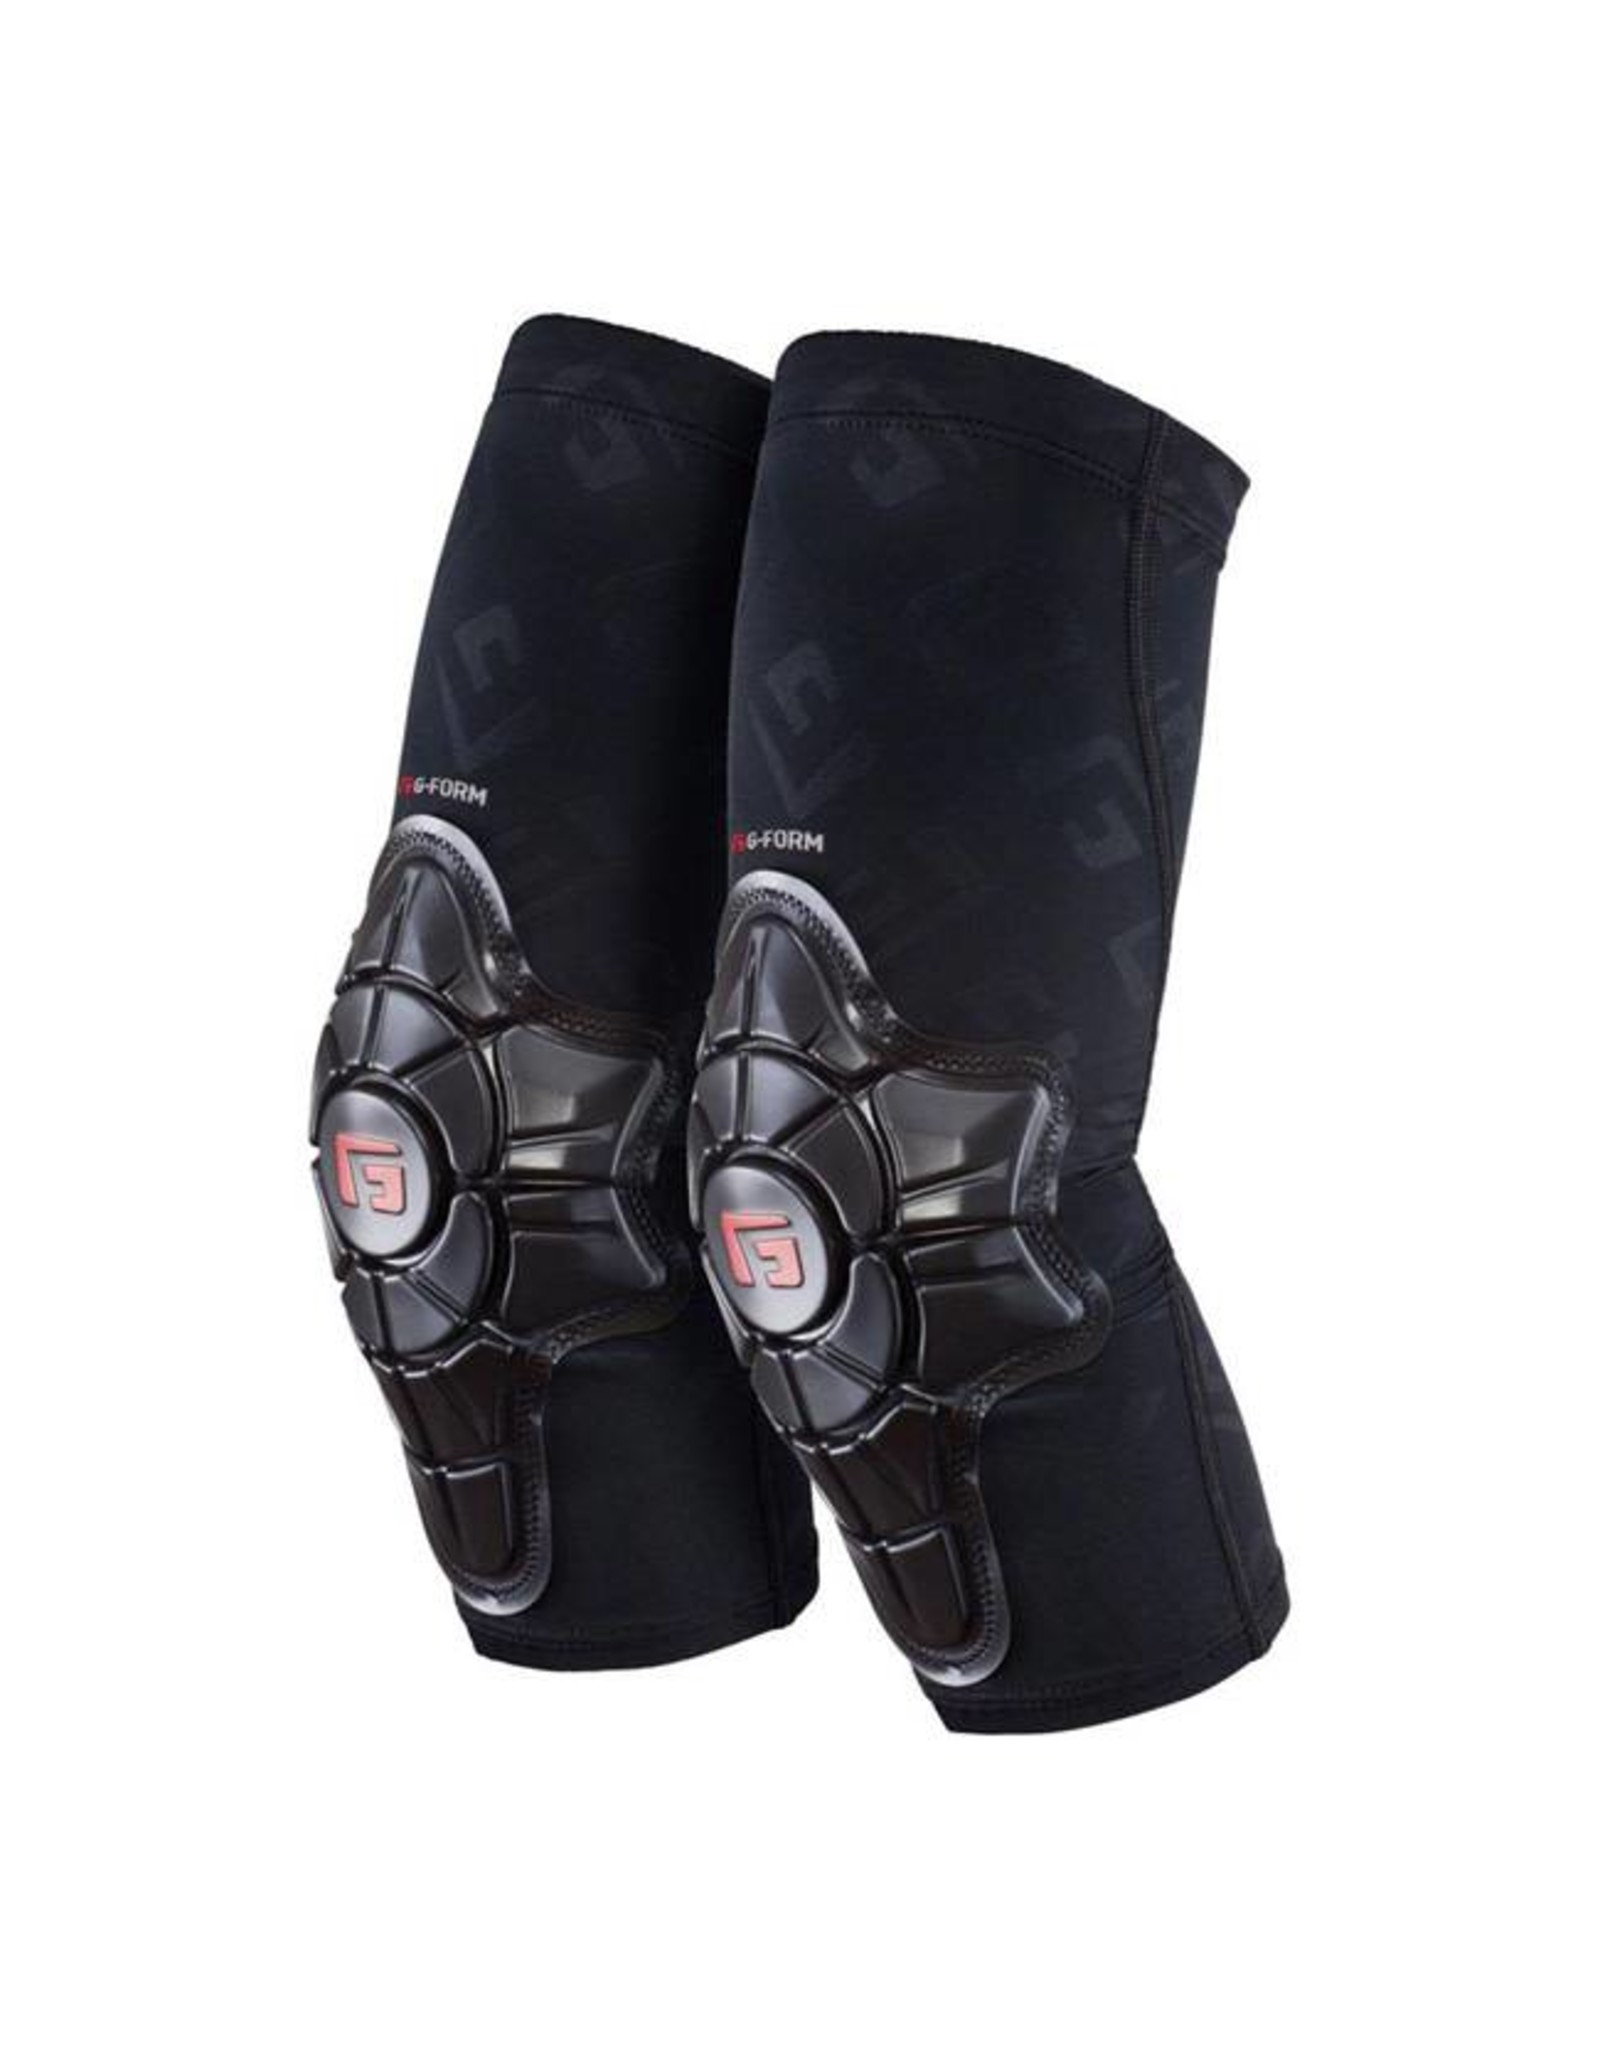 G-Form G-Form Pro-X Elbow Pad: Black/Embossed G, MD